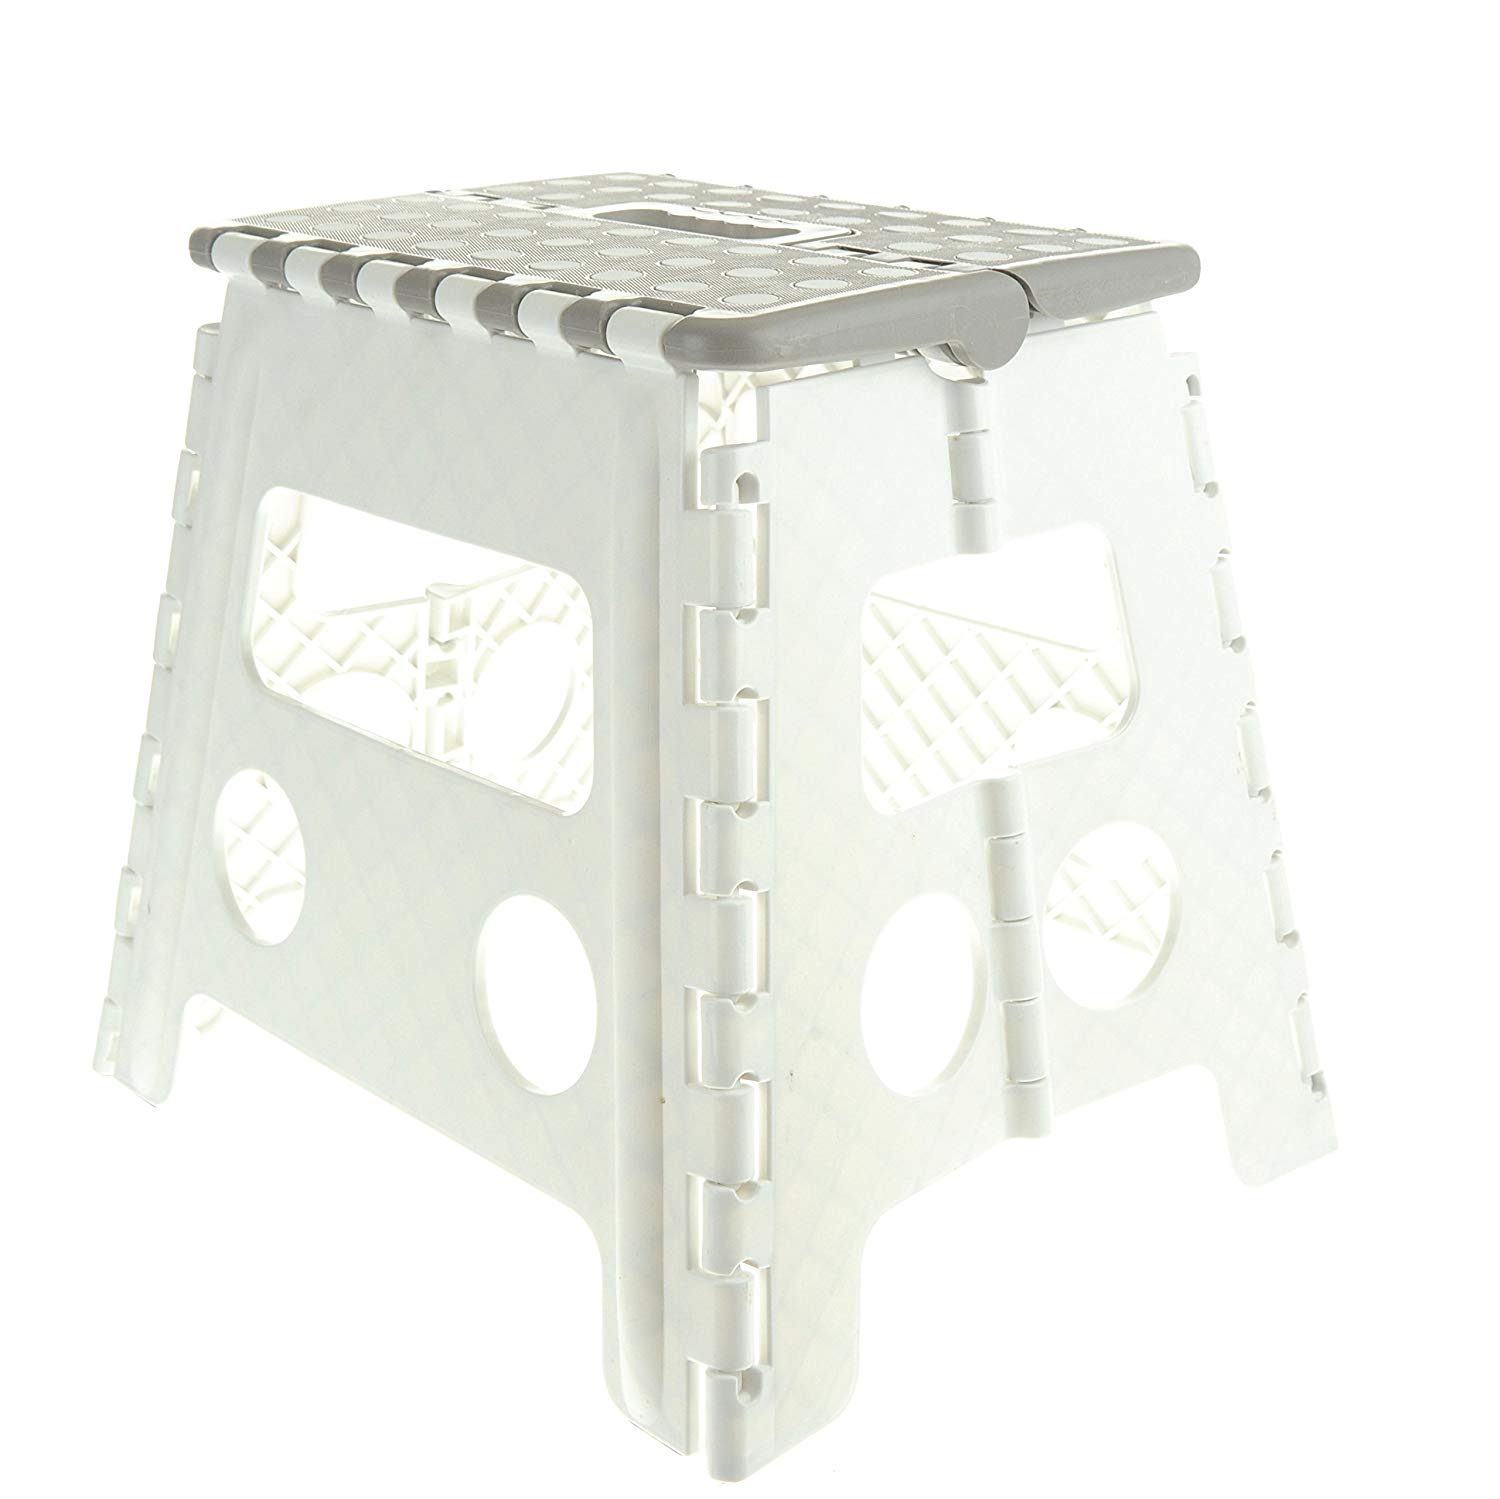 Amazing Cheap Step Stool Bedroom Find Step Stool Bedroom Deals On Ibusinesslaw Wood Chair Design Ideas Ibusinesslaworg